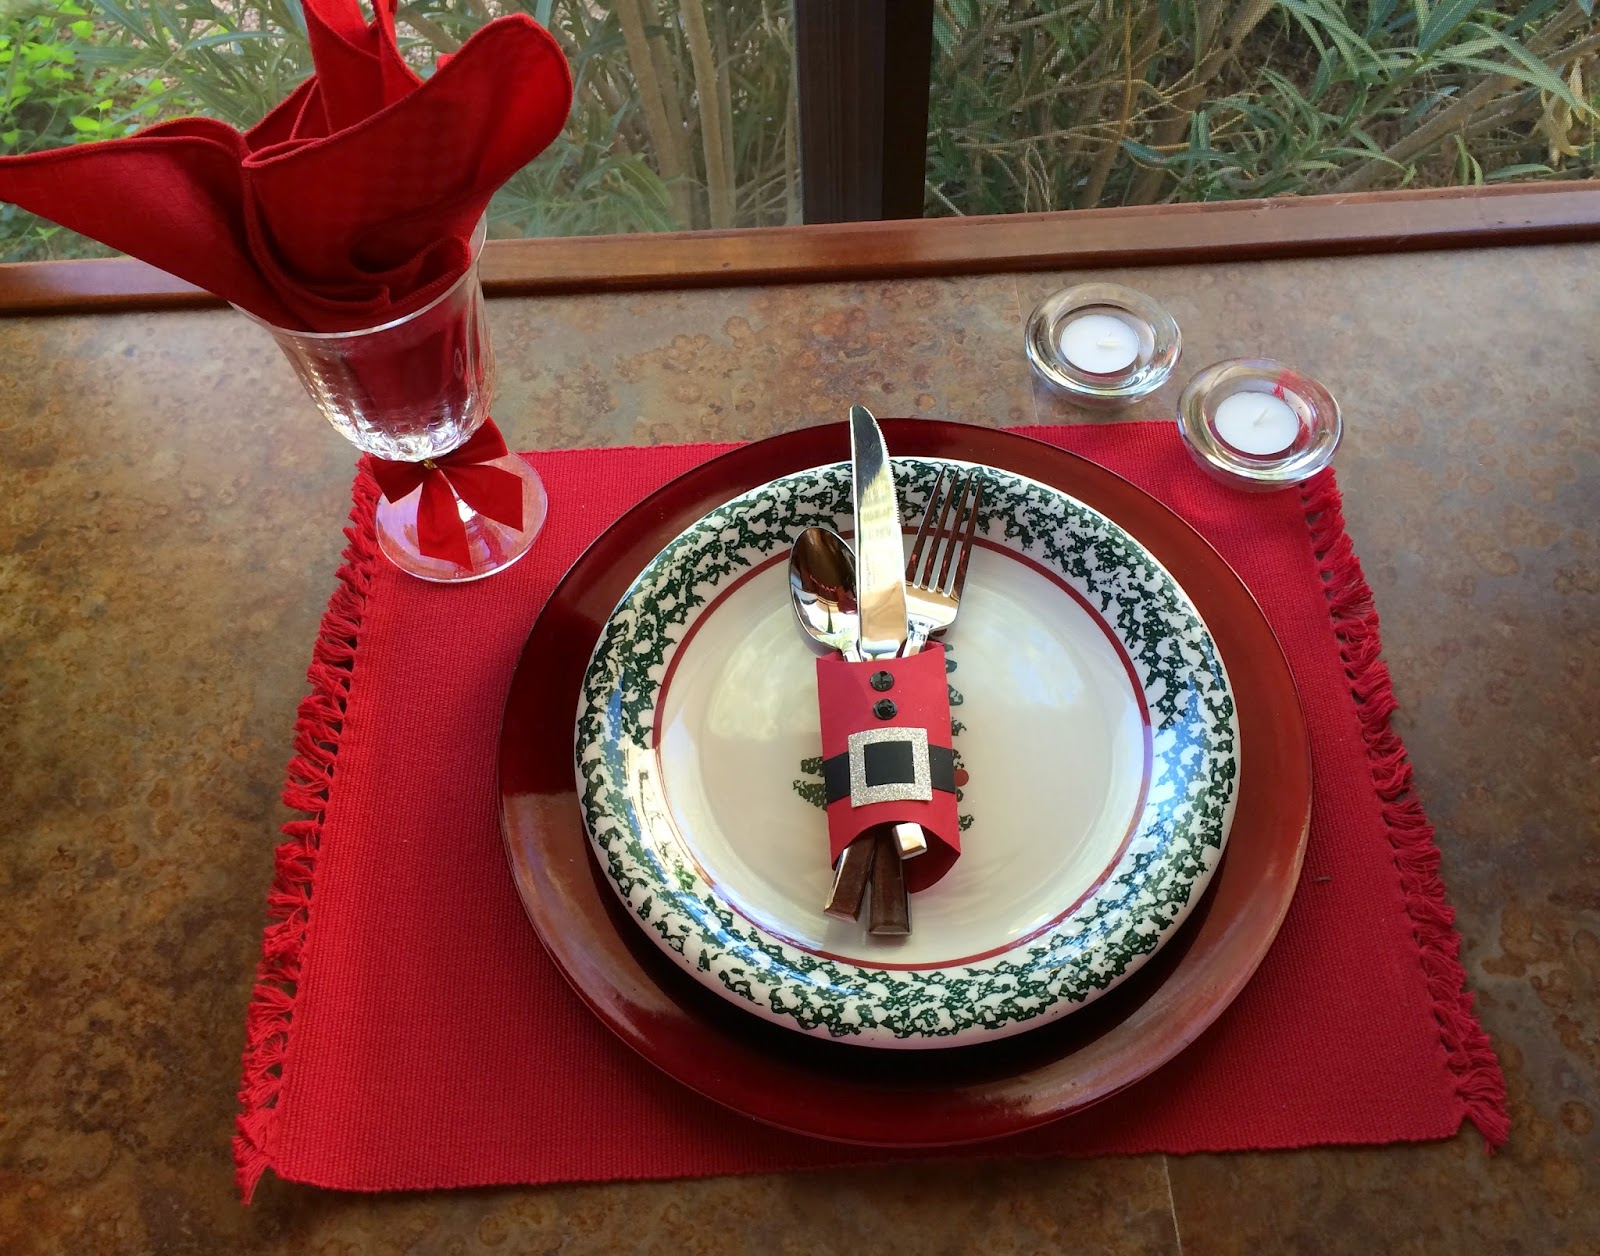 kards by kadie christmas place setting. Black Bedroom Furniture Sets. Home Design Ideas